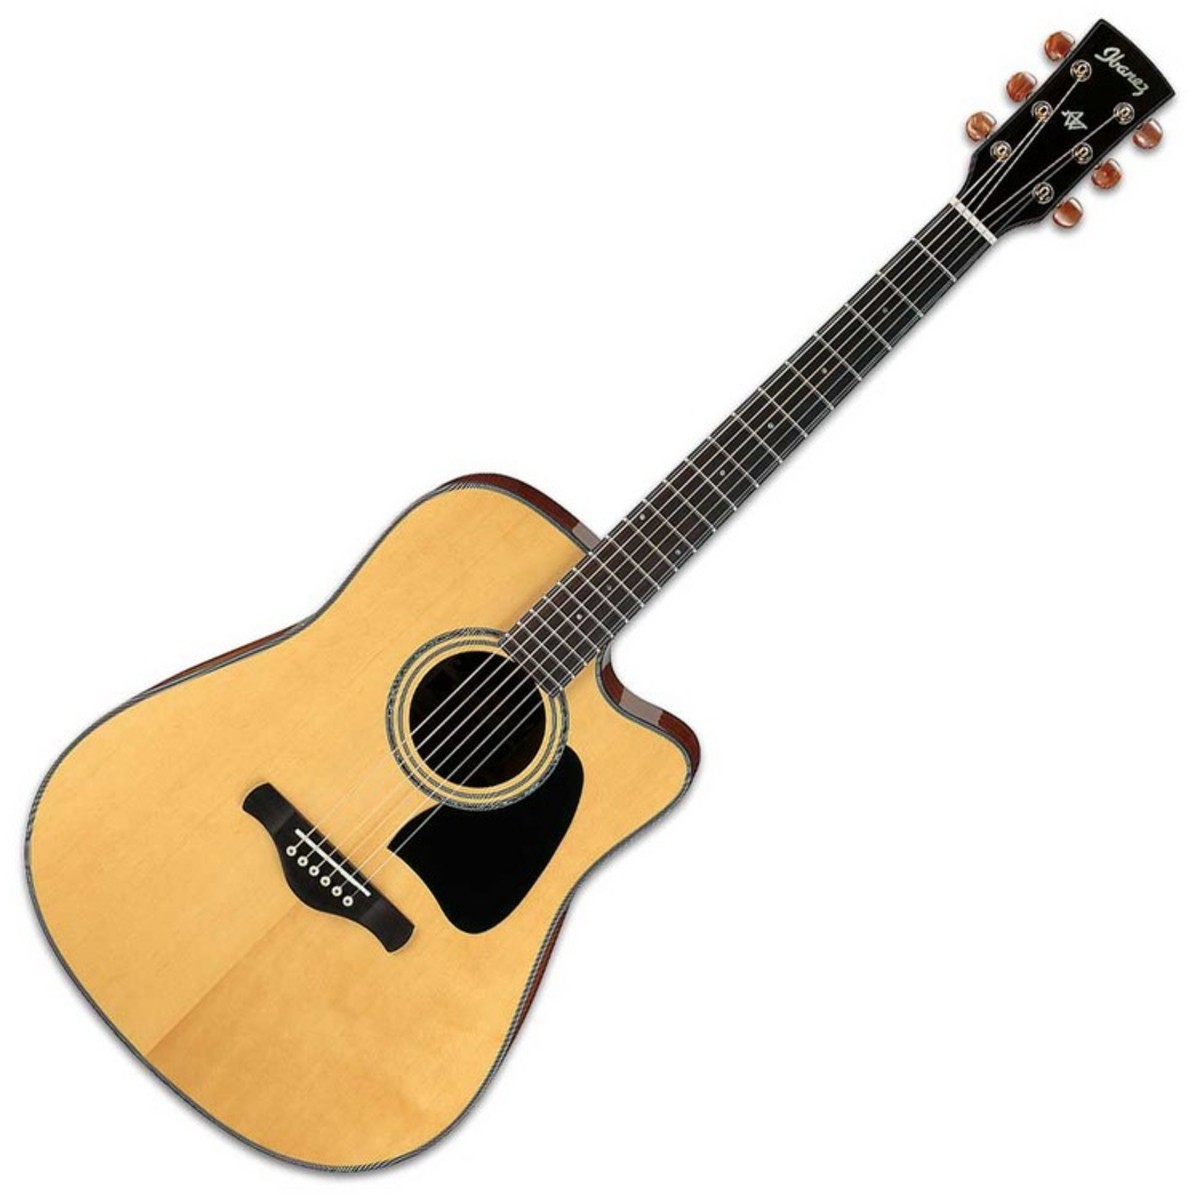 ibanez aw3000ce lectro acoustique artwood guitare. Black Bedroom Furniture Sets. Home Design Ideas